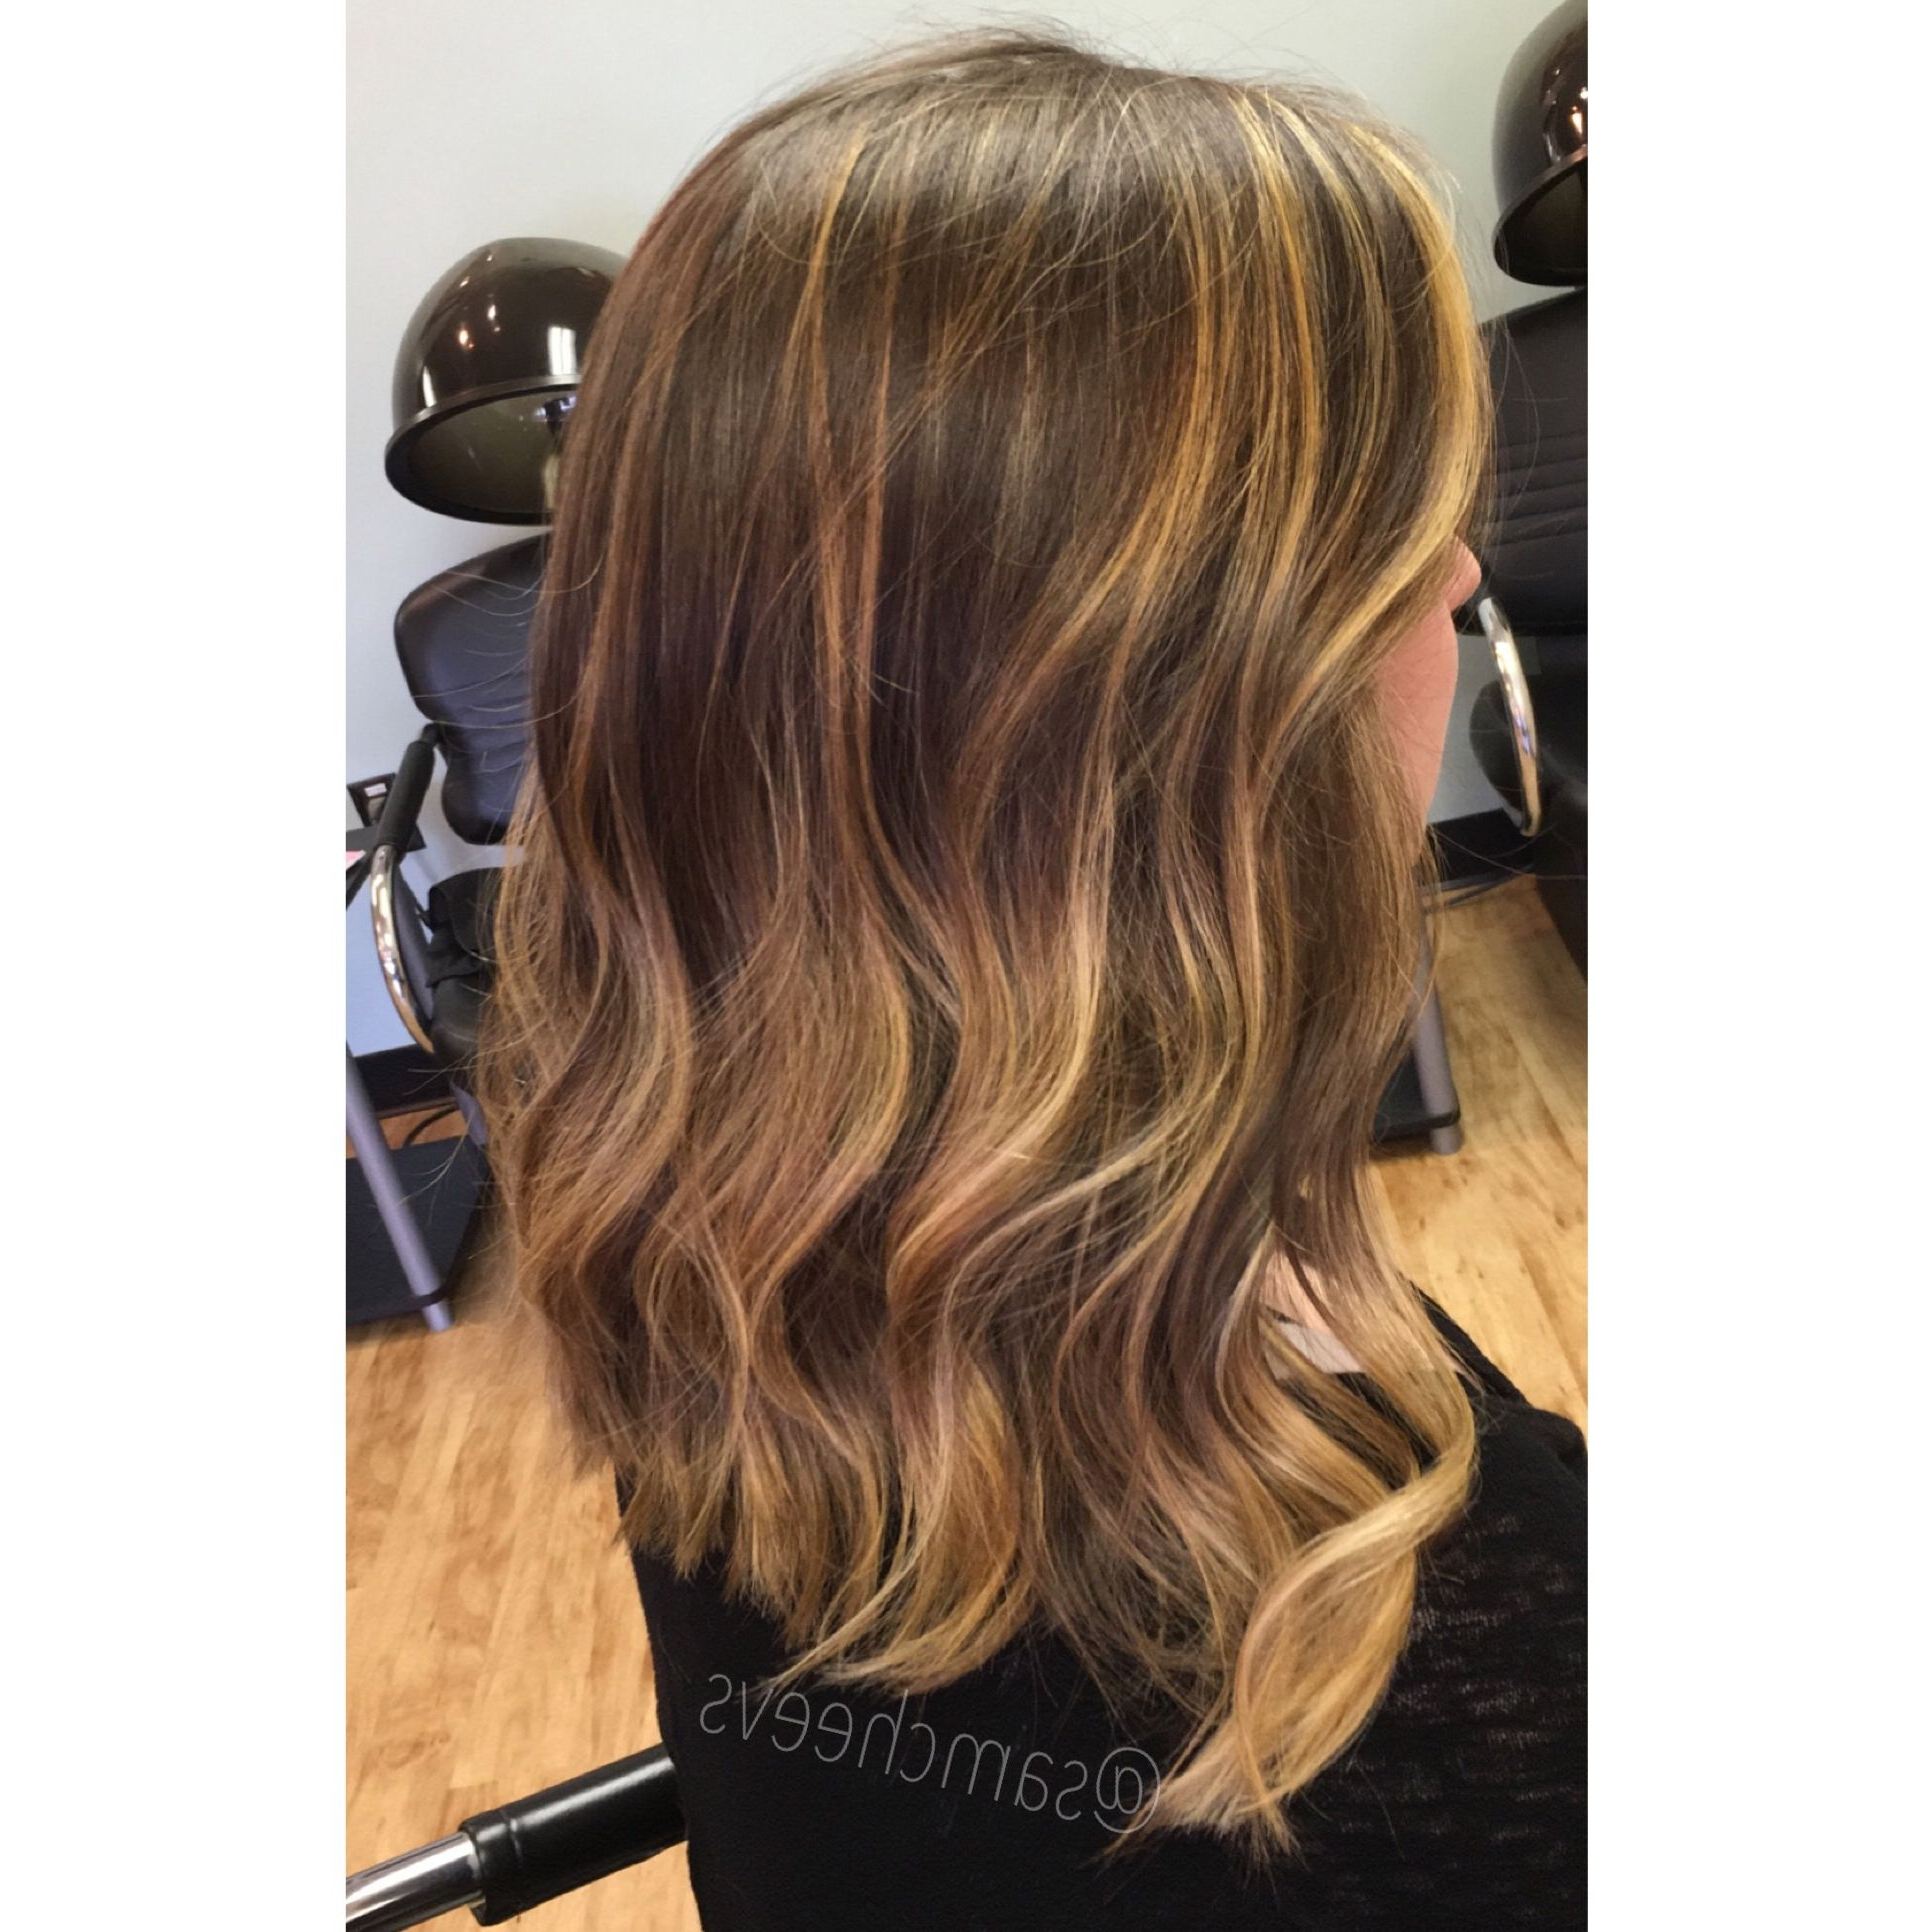 Newest Long Bob Blonde Hairstyles With Babylights Throughout Awesome Honey Blonde Highlights For Brown Hair Long Bob Cut Image (View 15 of 20)